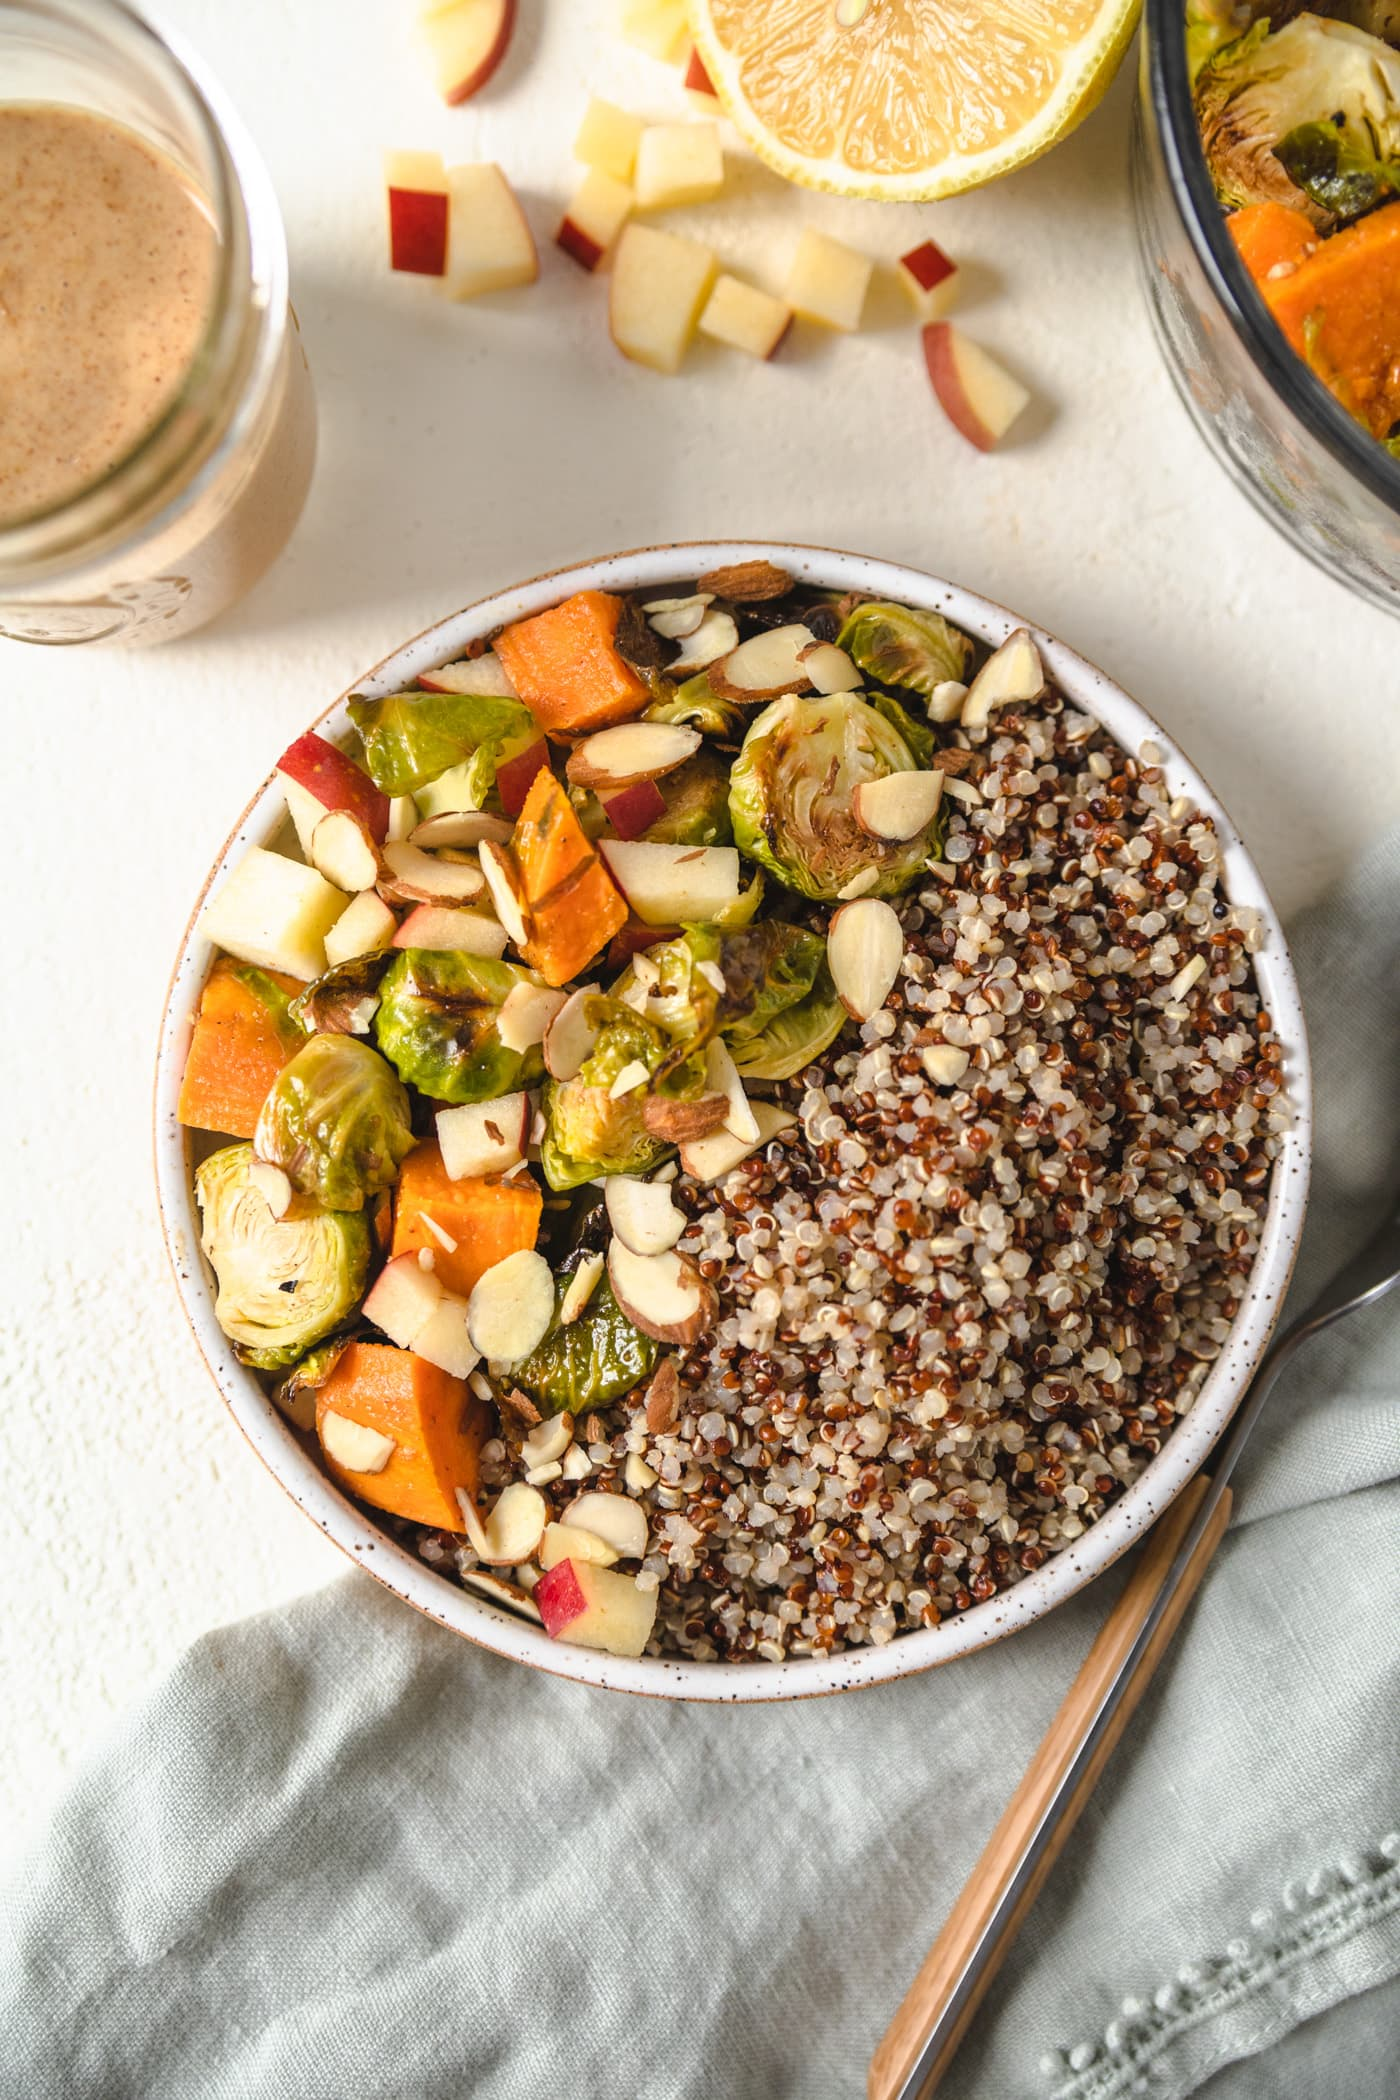 A buddha bowl filled with fall vegetables, quinoa next to a jar of almond ginger dressing.